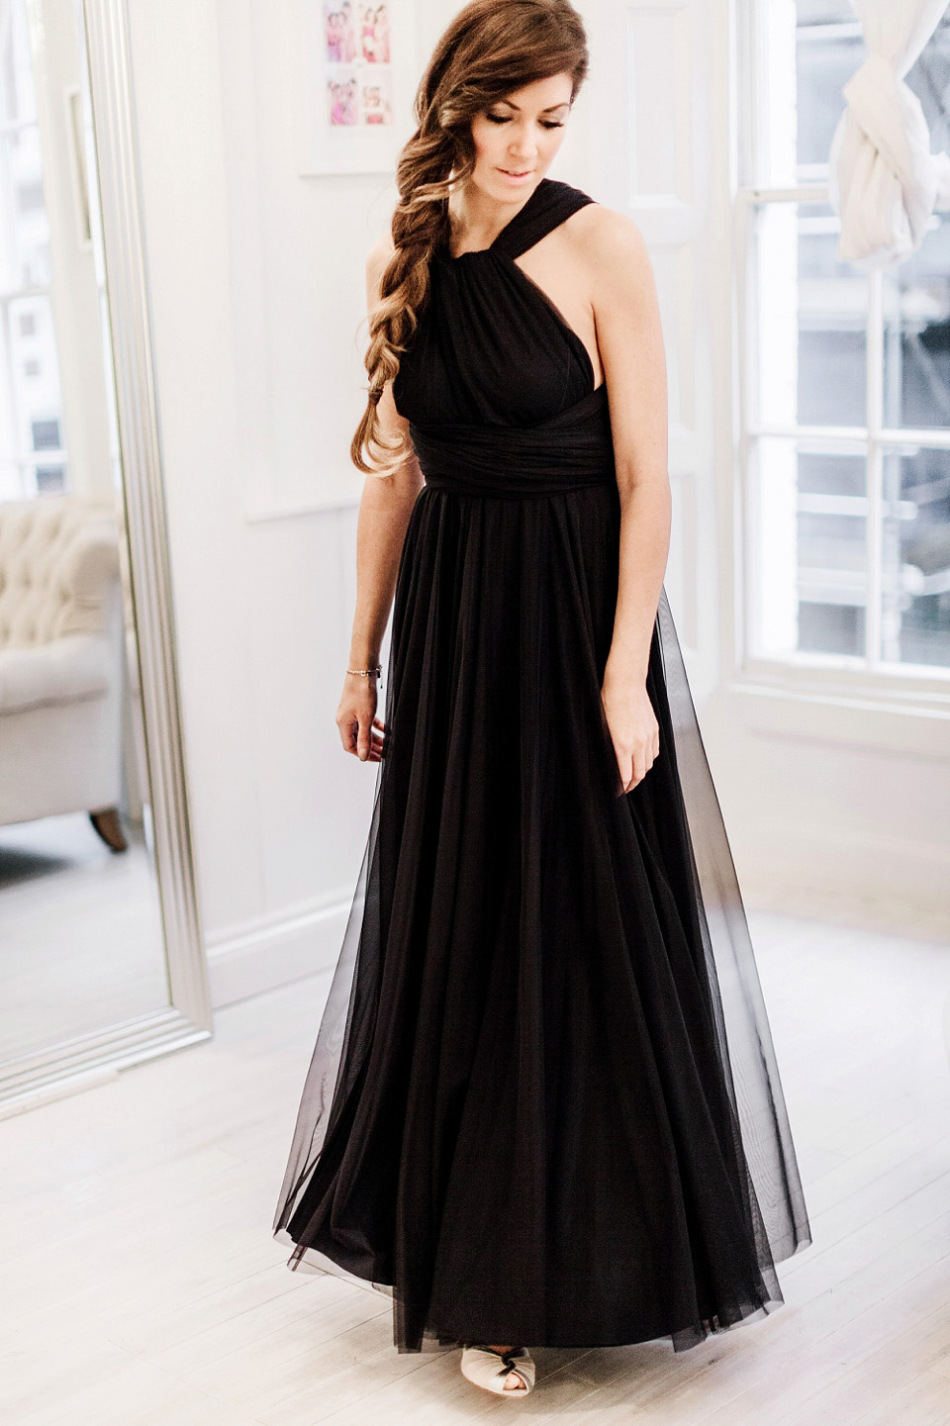 Black bridesmaid from Two birds bridesmaid - scarlet wedding colour | fabmood.com